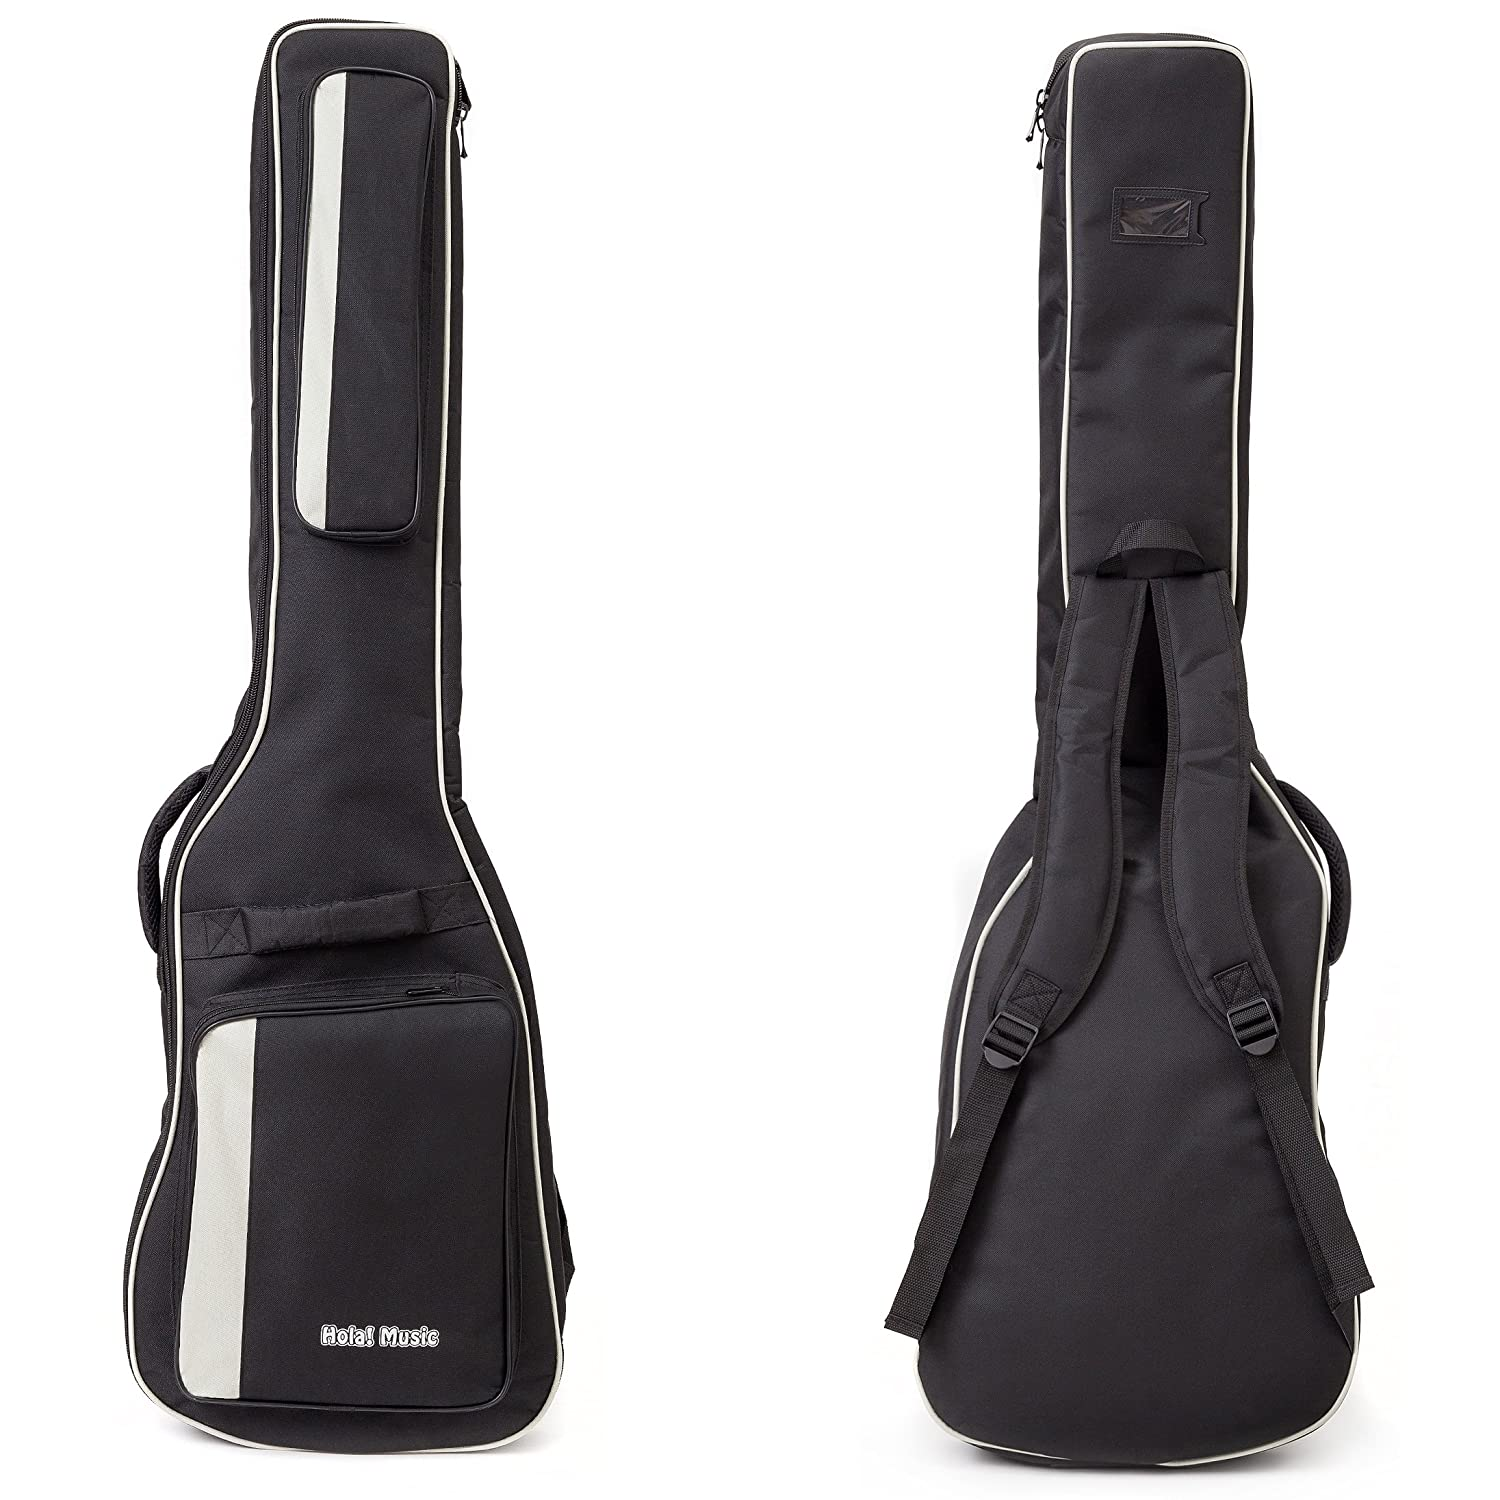 Acoustic and Classical Guitars Gig Bag Full Size (41 inch) by Hola! Music, Deluxe Series with 15mm Padding, Black Hol-2882